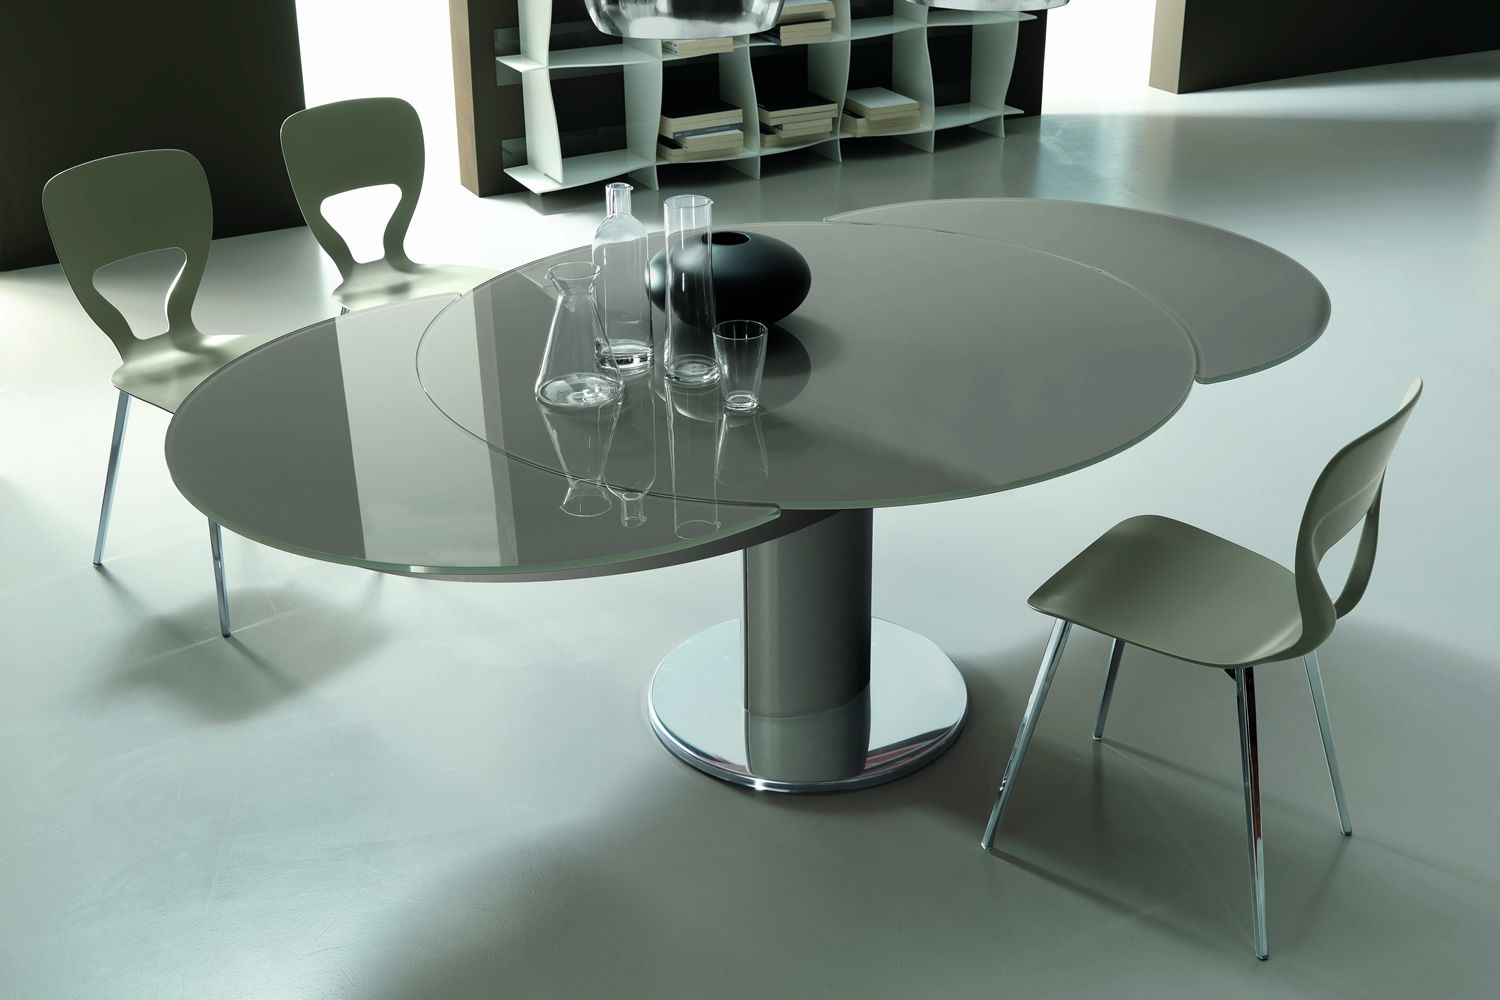 Giro table design ronde de bontempi casa extensible for Table ronde design extensible